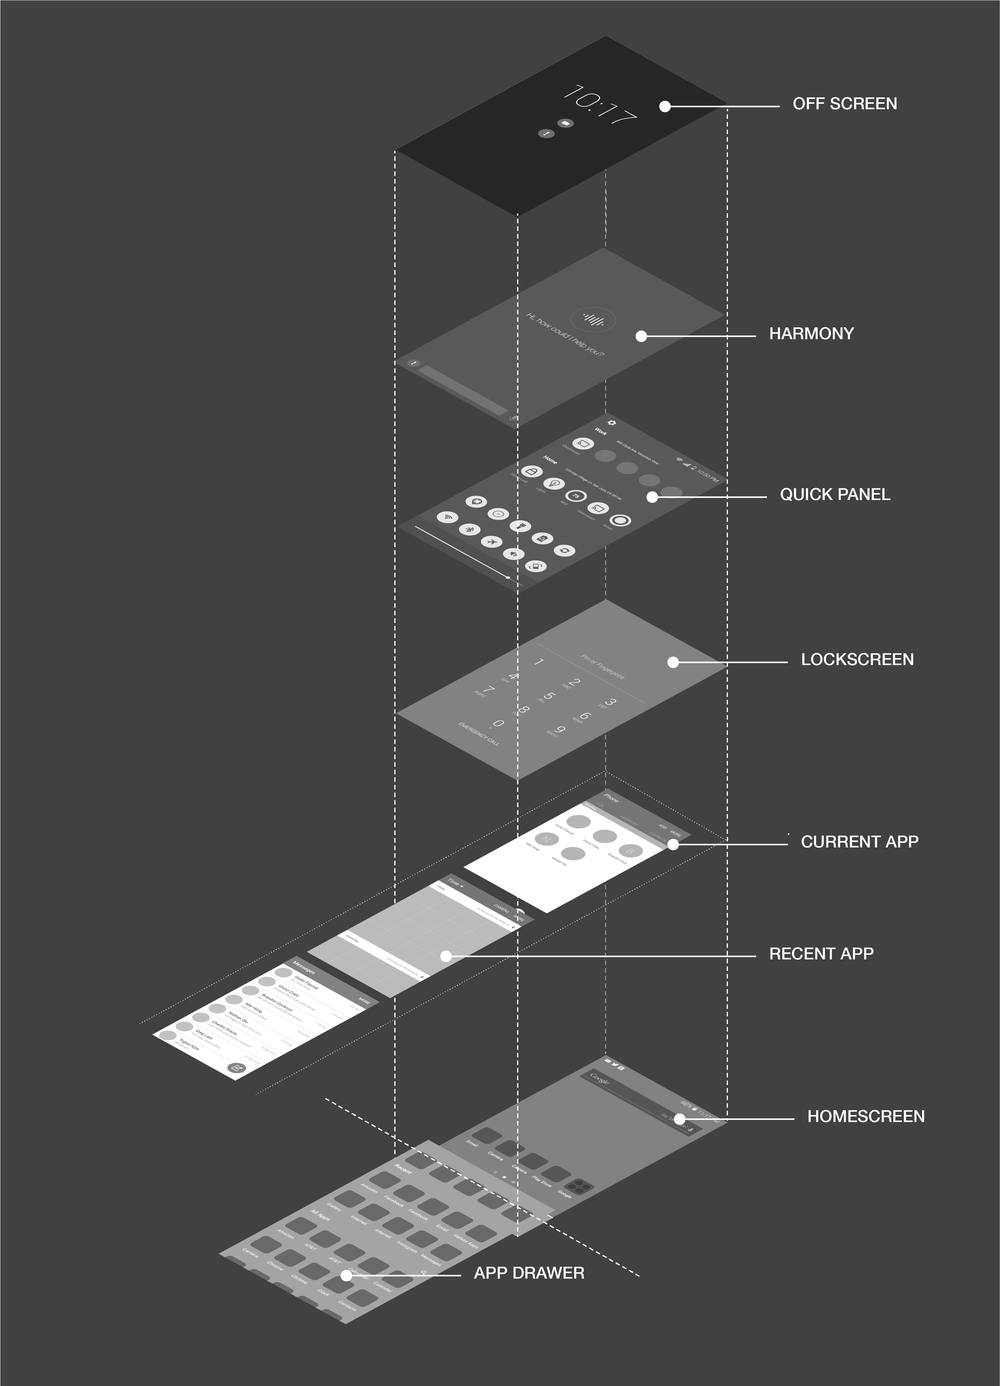 PROPOSED GALAXY S7 STRUCTURE